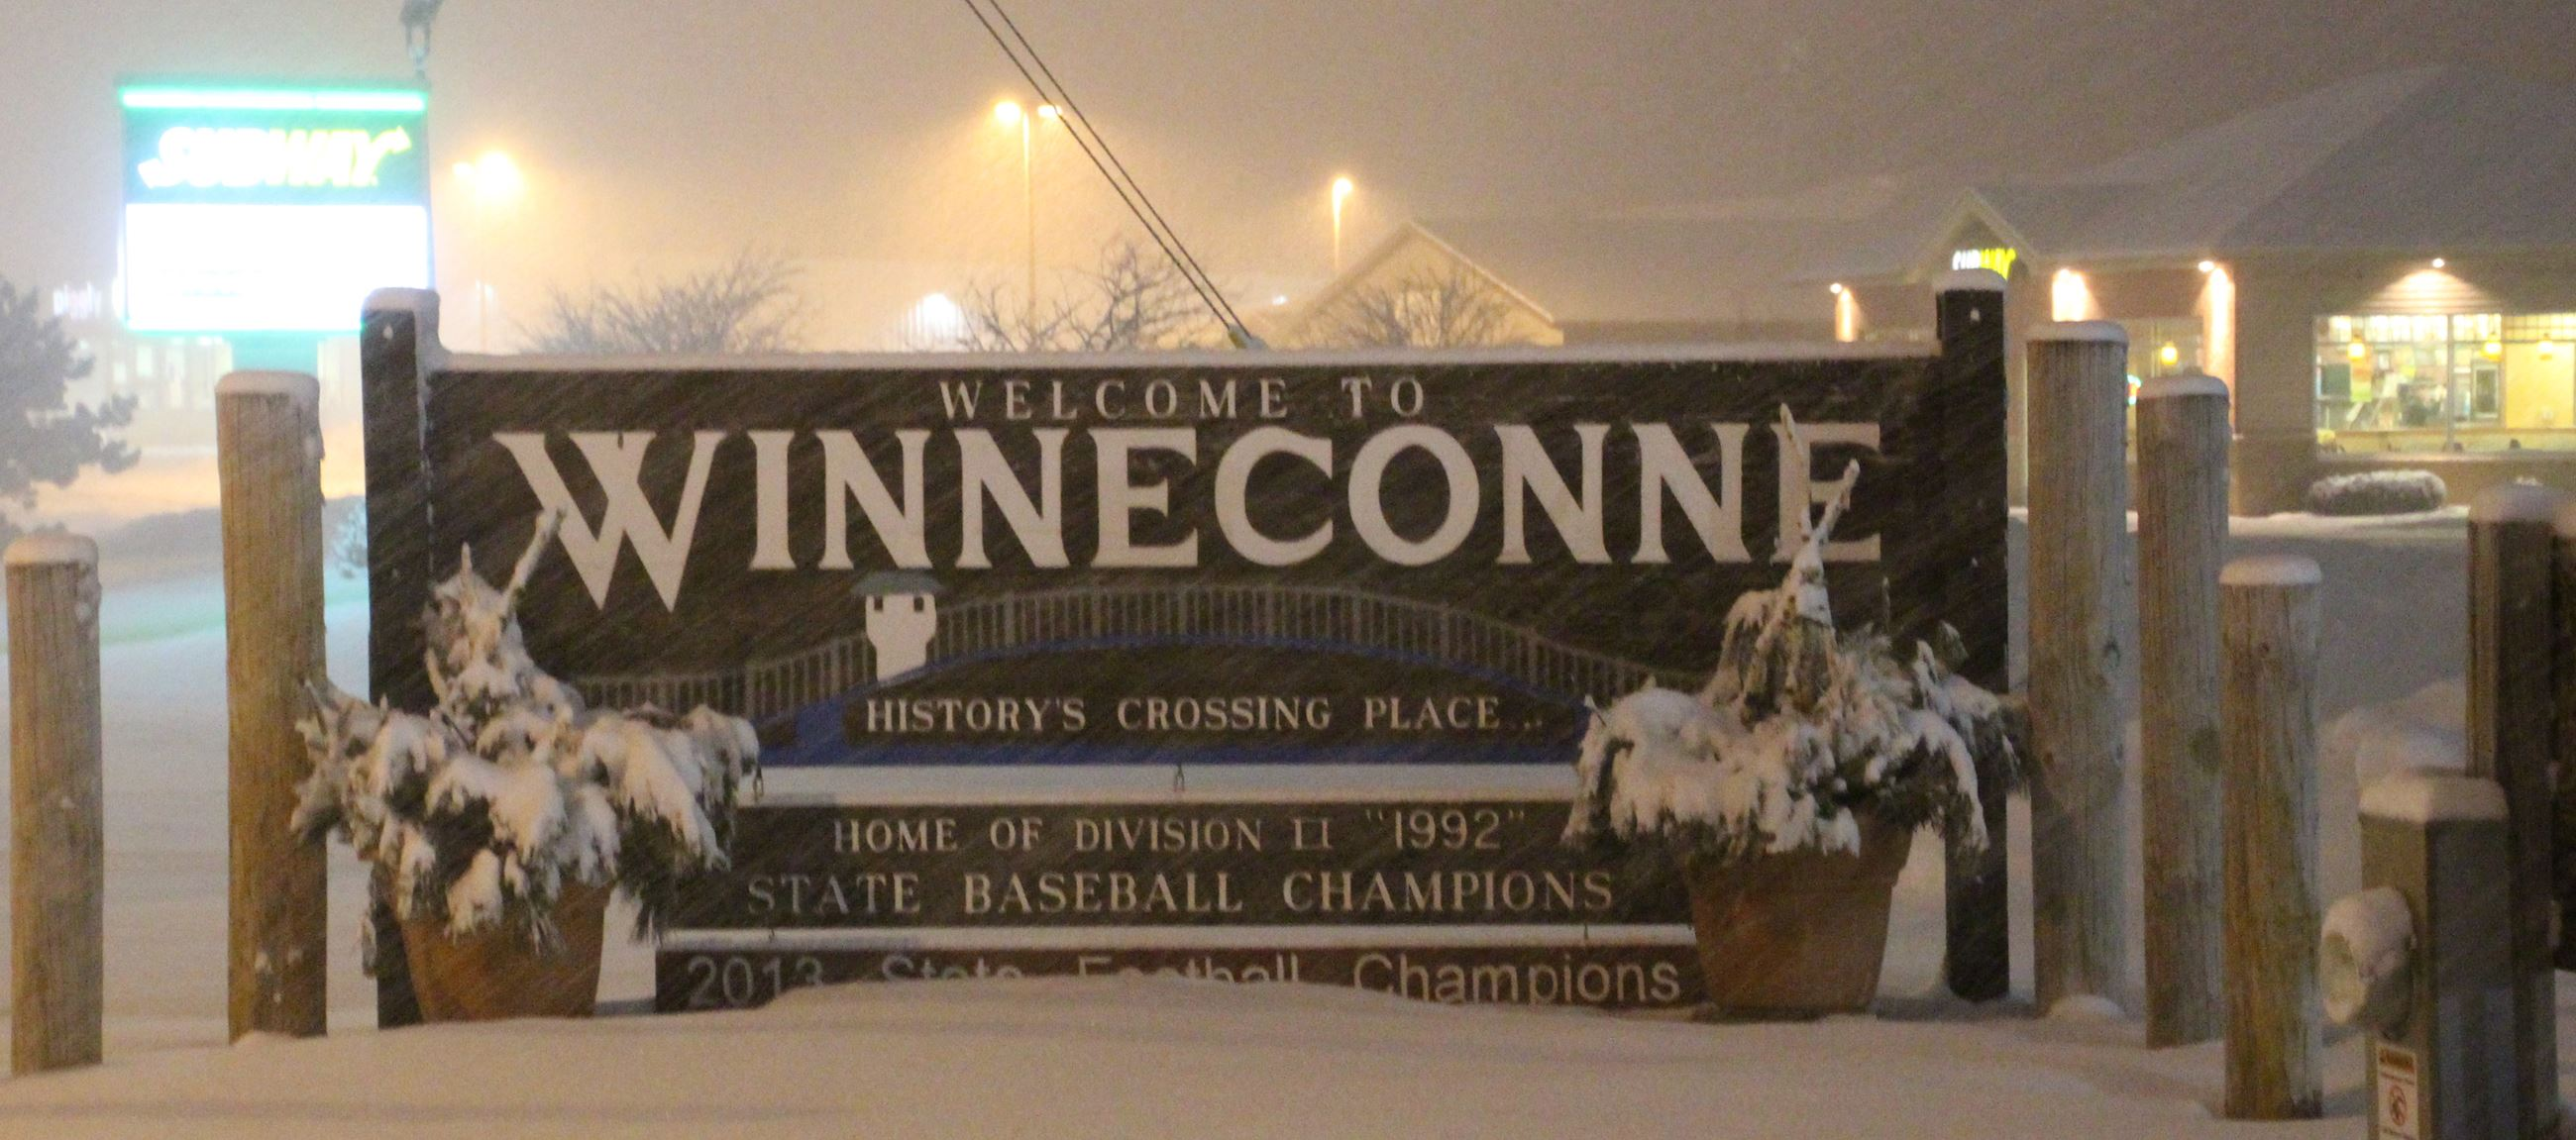 Winneconne Welcome Sign in Snow